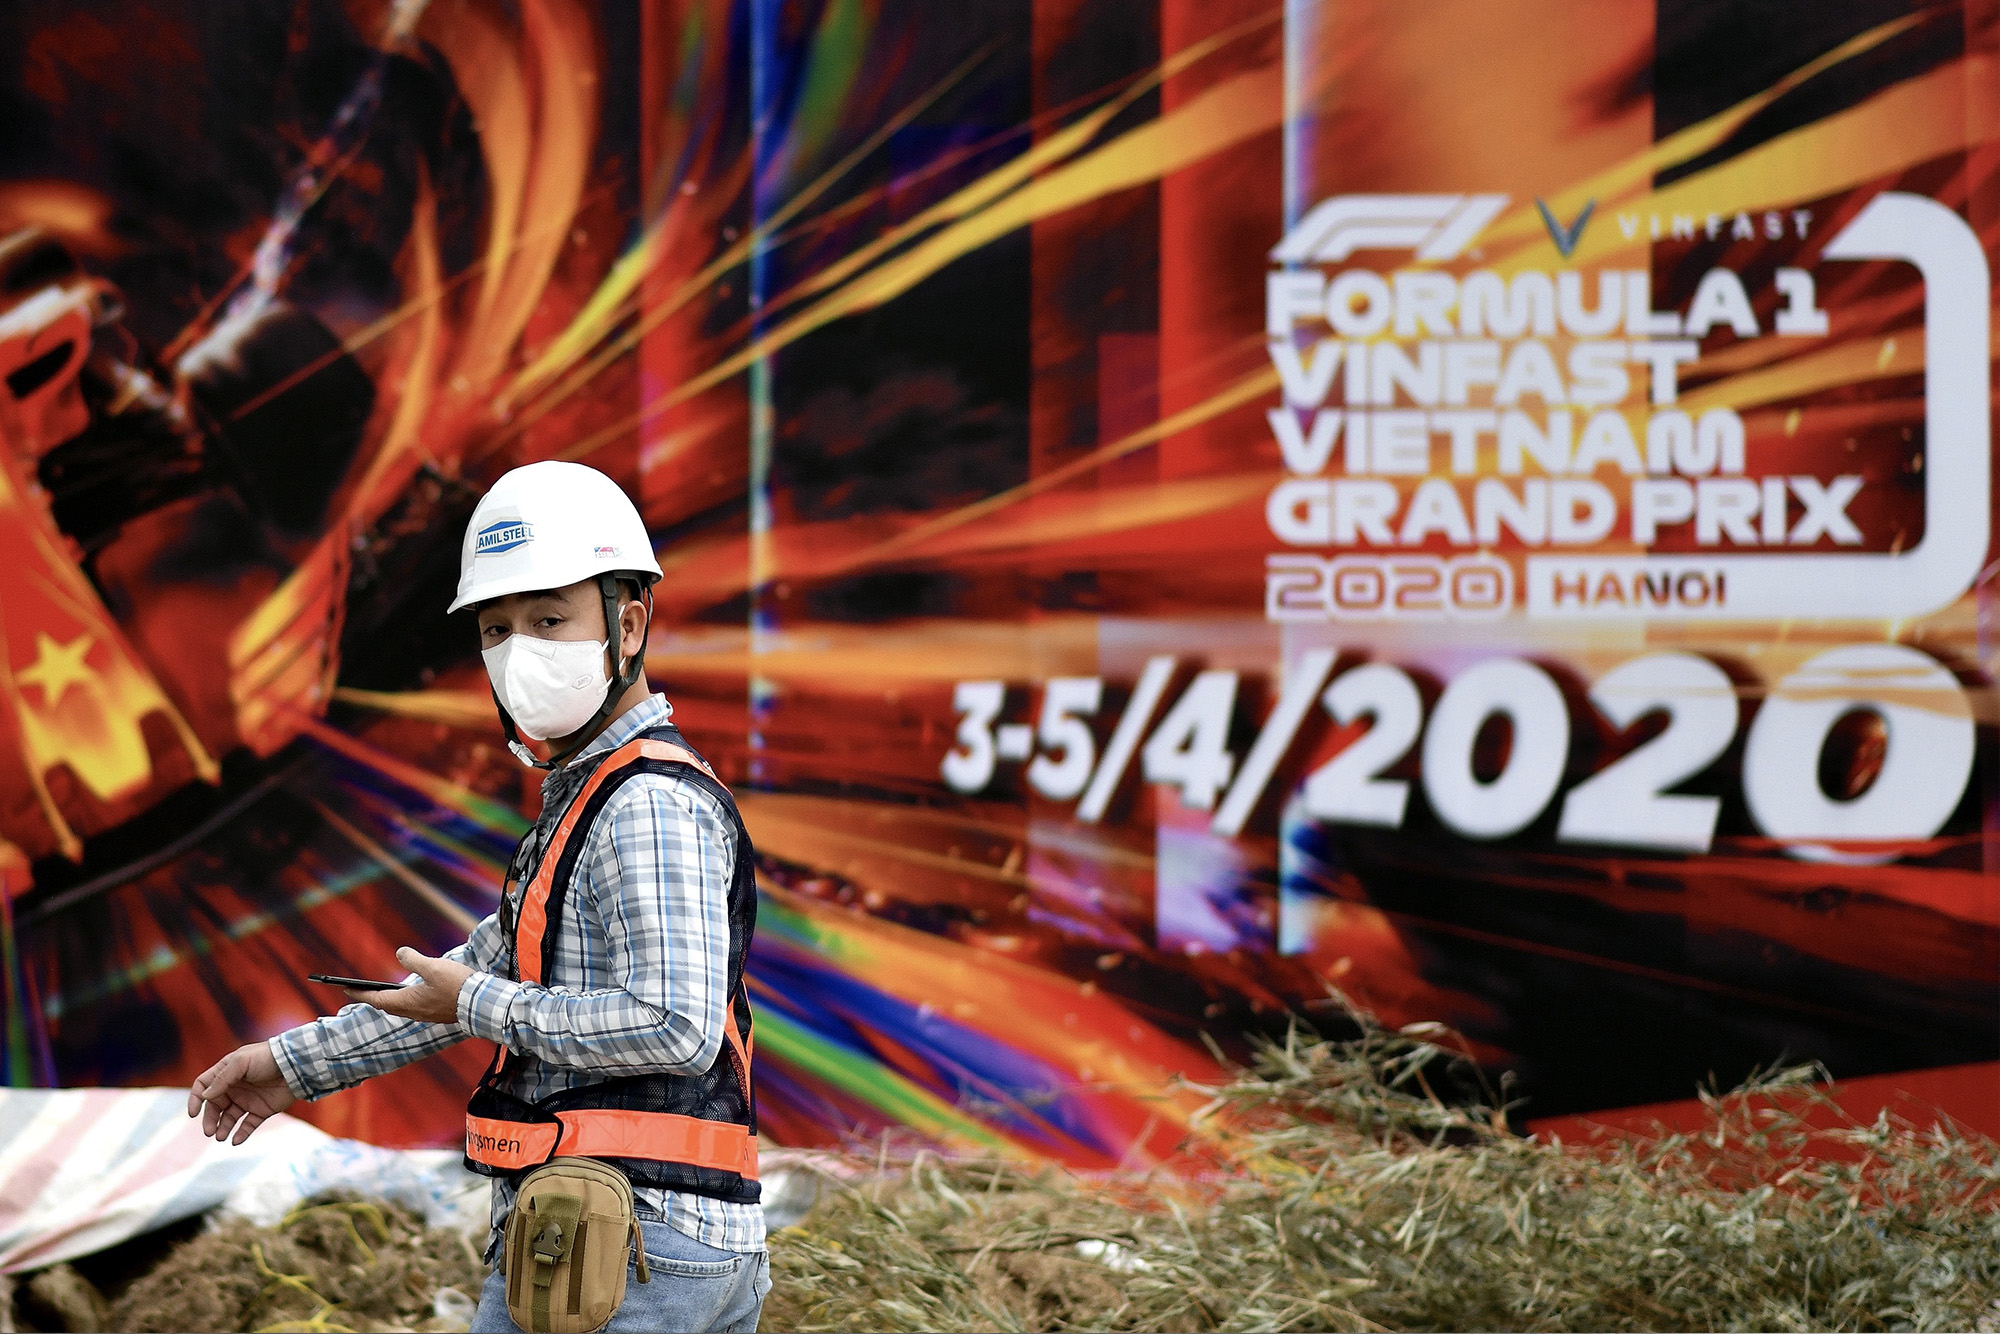 Worker with face mask in front of F1 Vietnamese Grand Prix poster